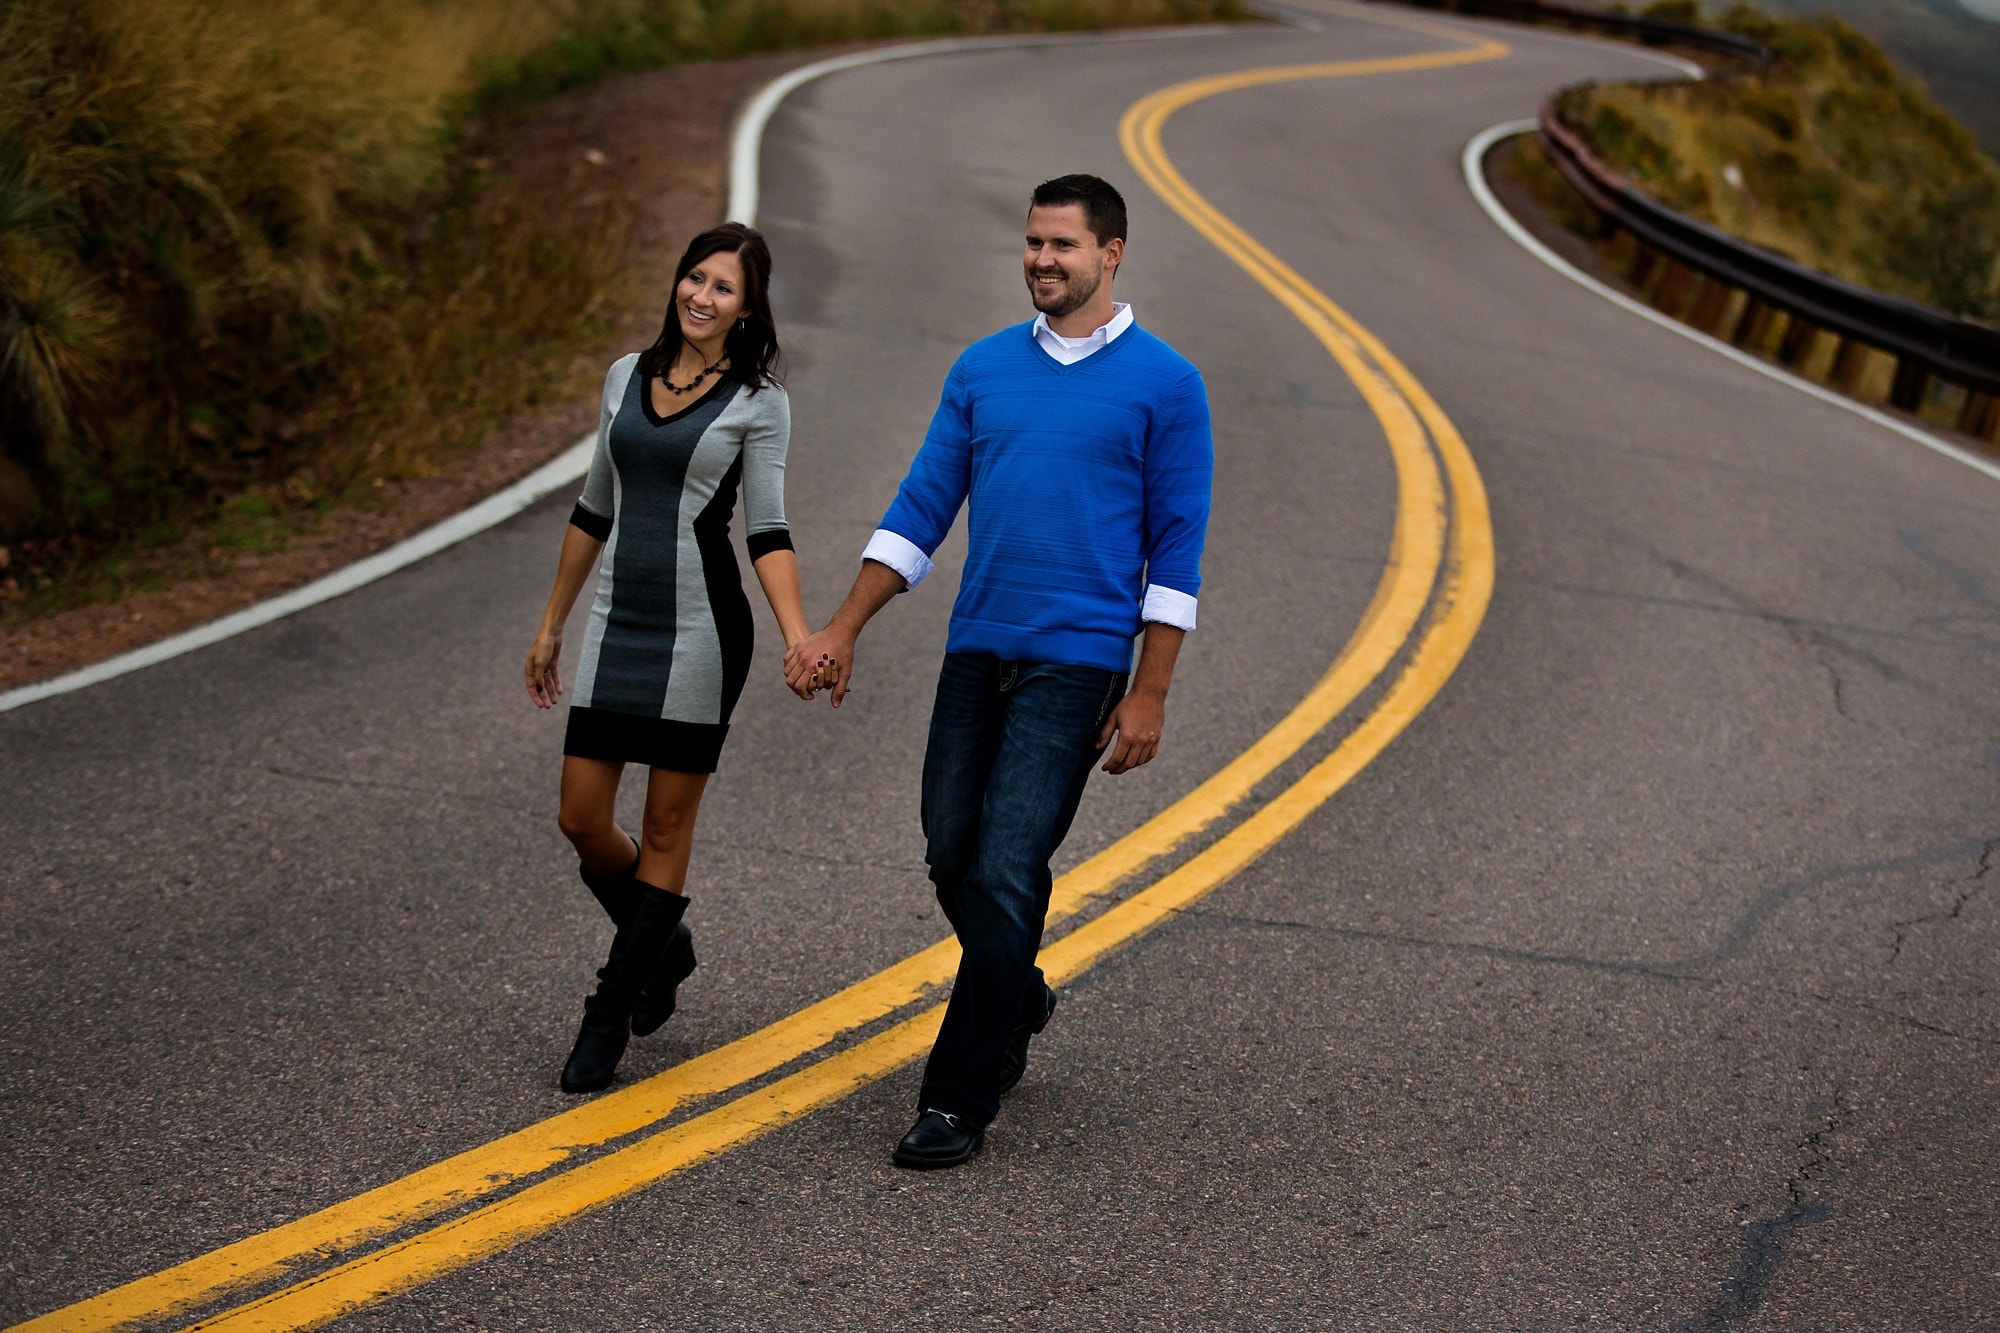 Nick and Melanie walk on the road during their Lookout mountain engagement photos session in Golden, Colorado.